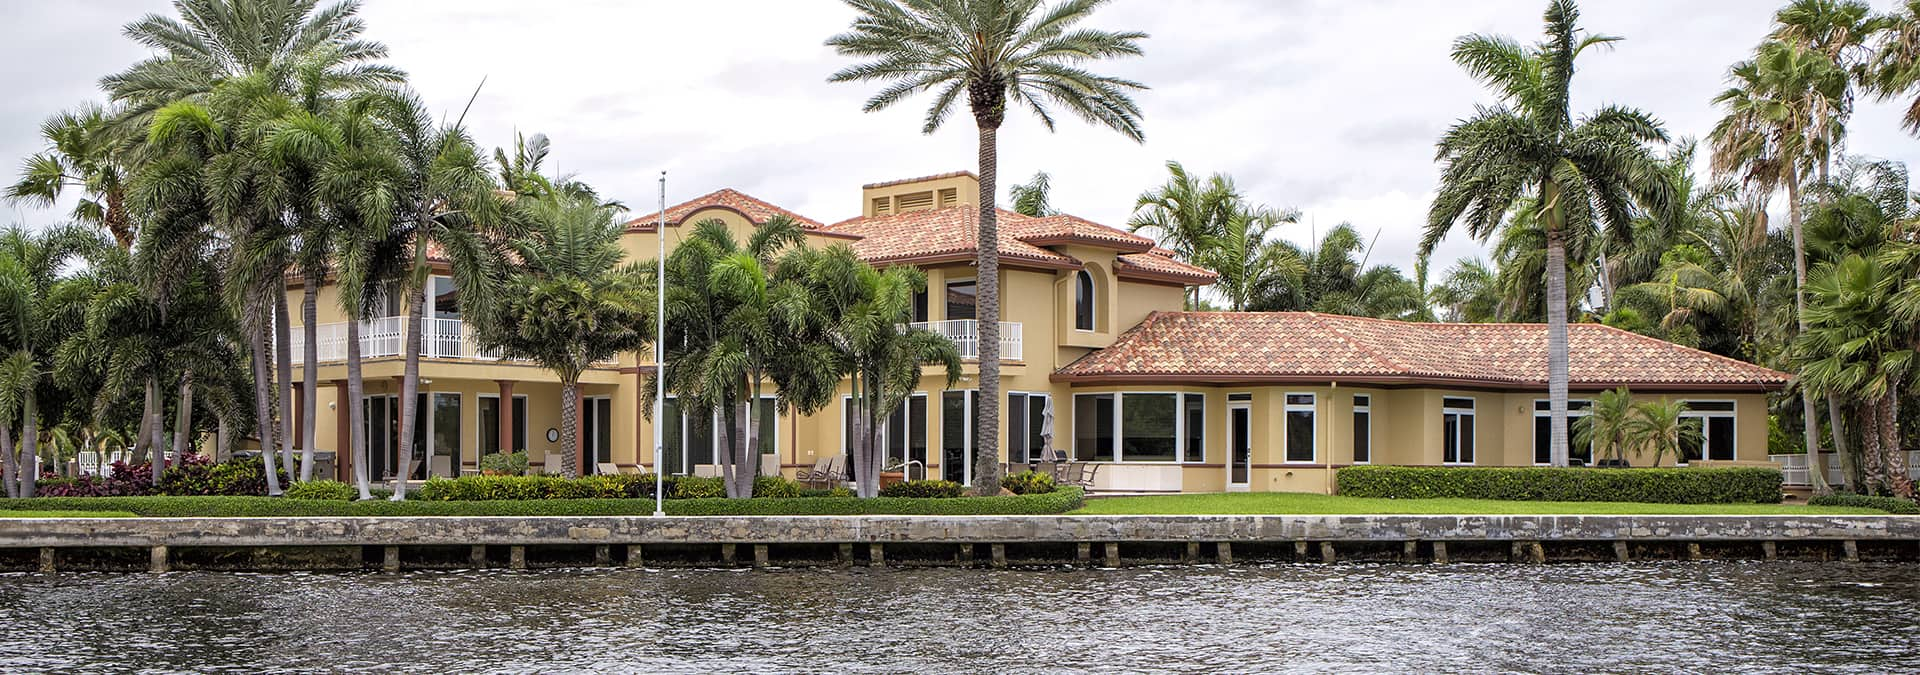 a large waterfront house in middleburg florida